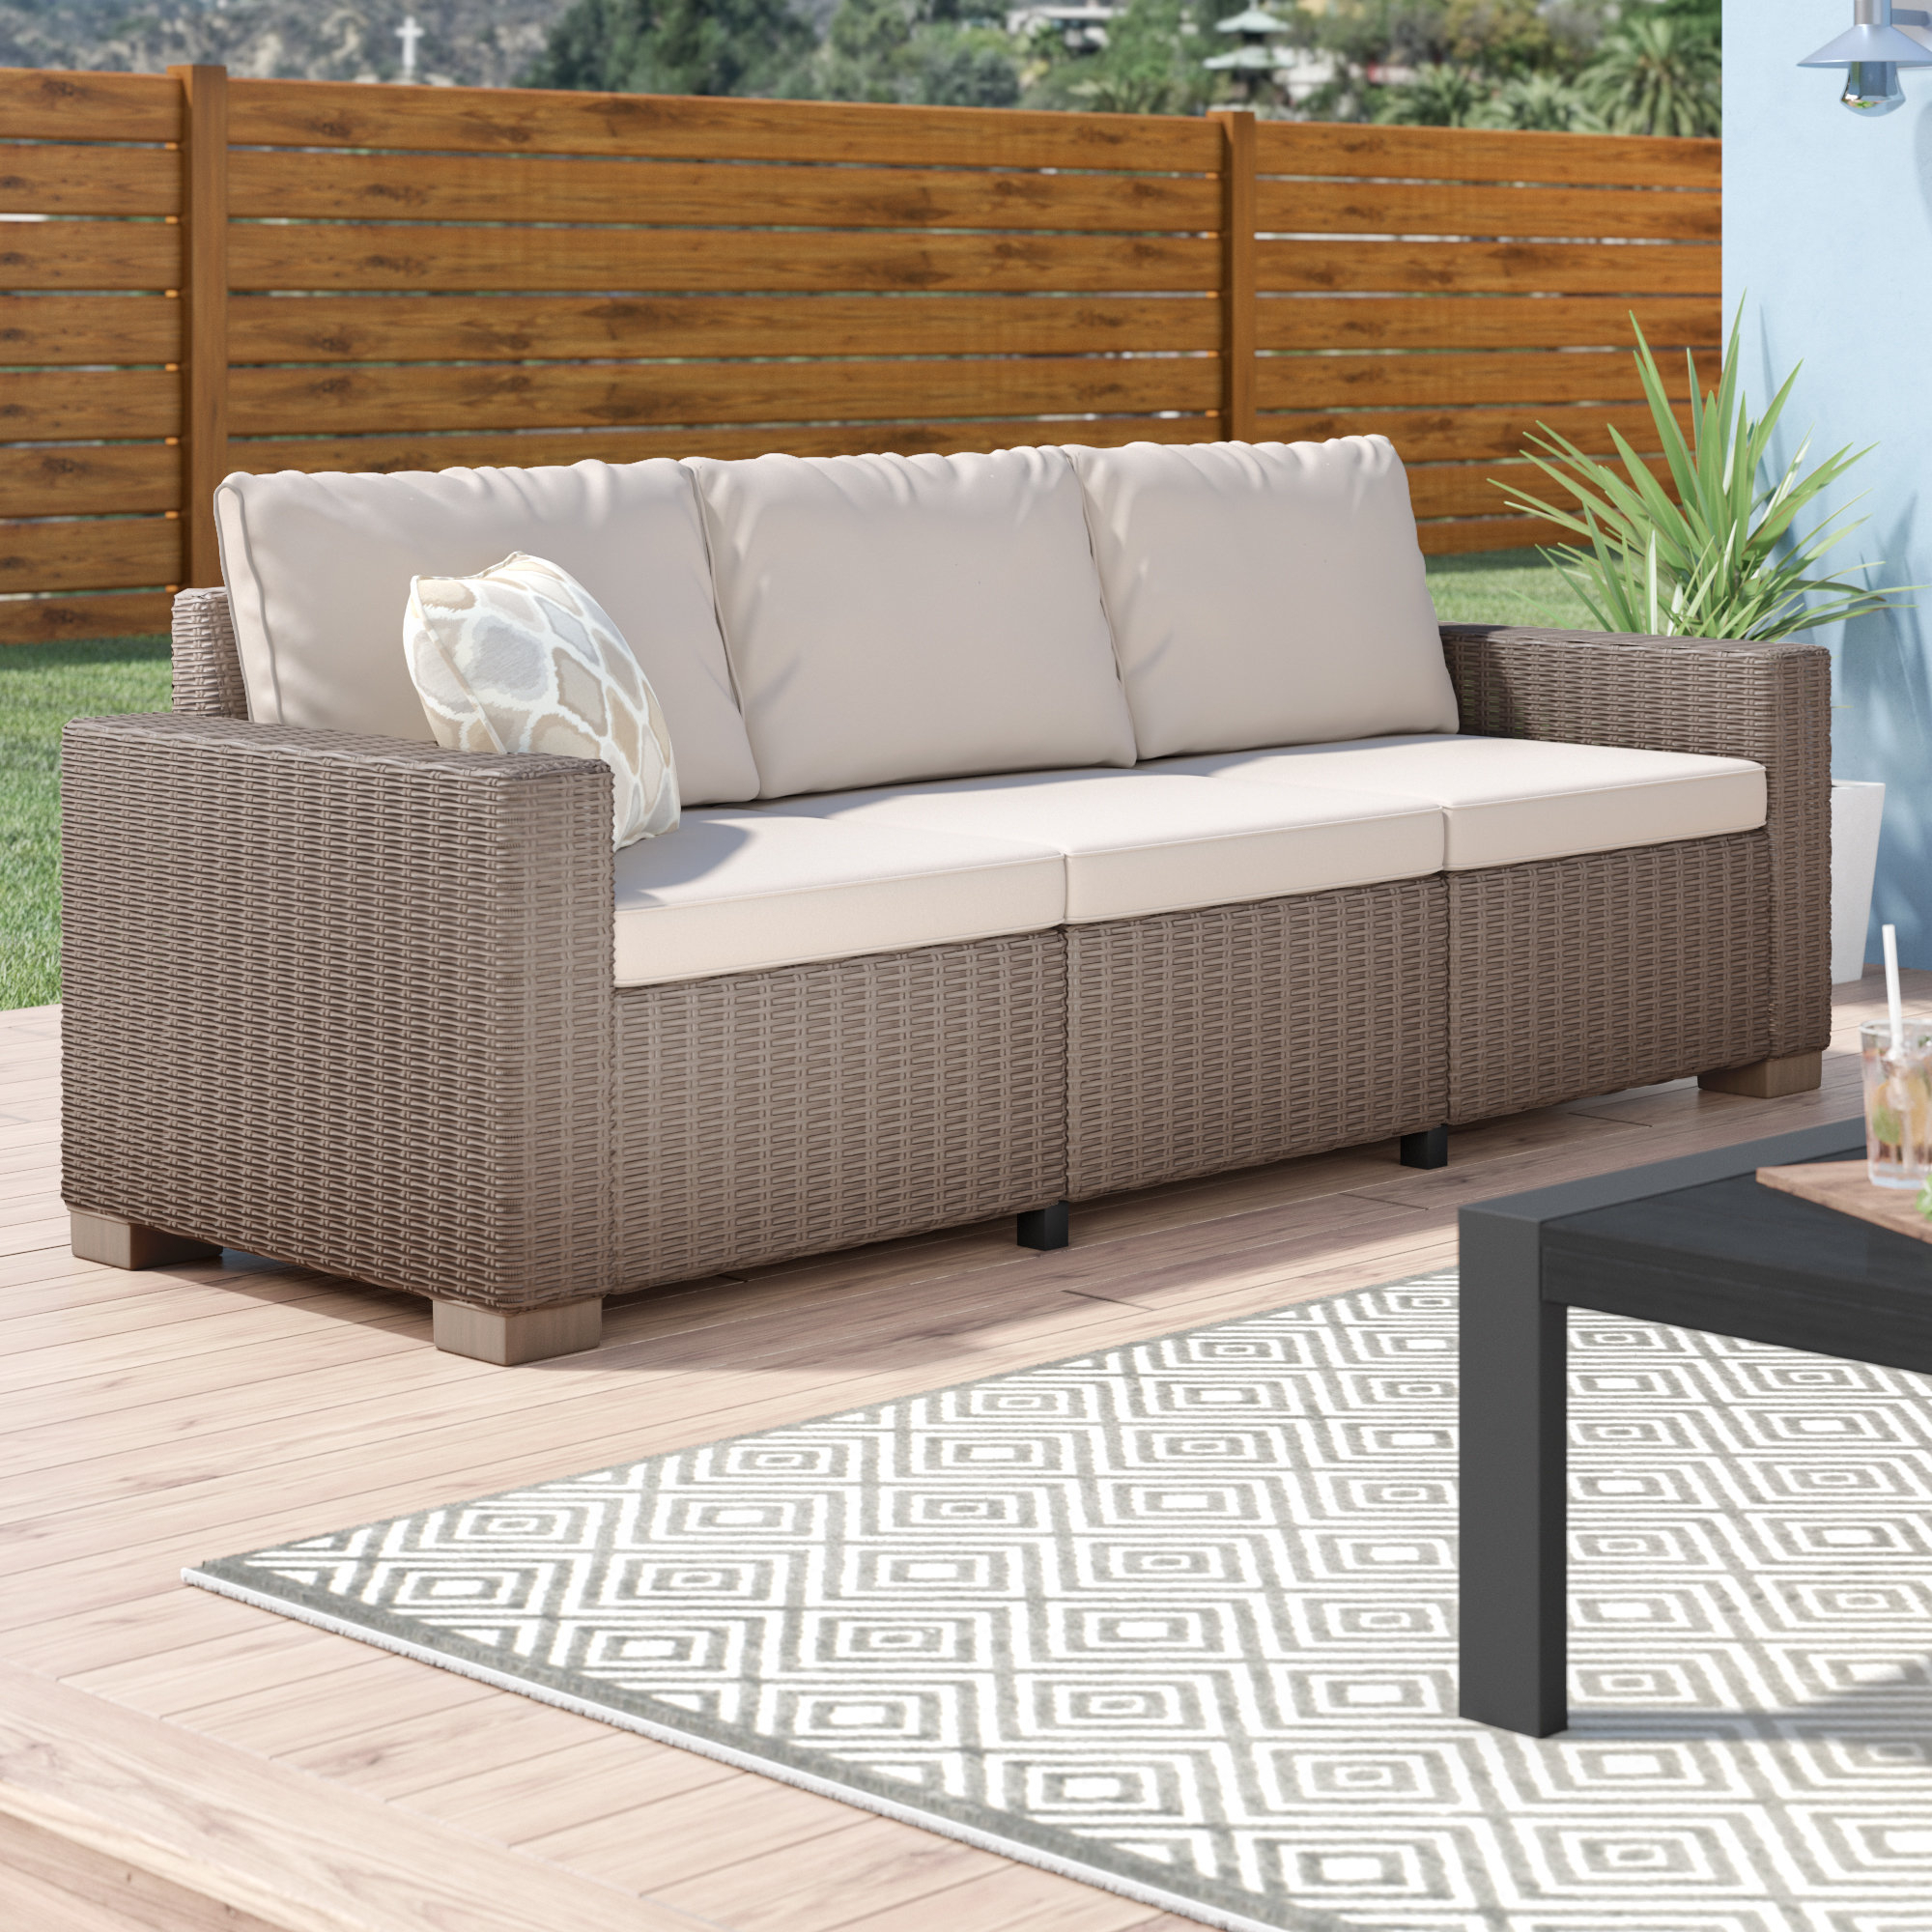 Most Recent Stallcup Patio Sofa With Cushions Inside Rowley Patio Sofas Set With Cushions (View 6 of 20)